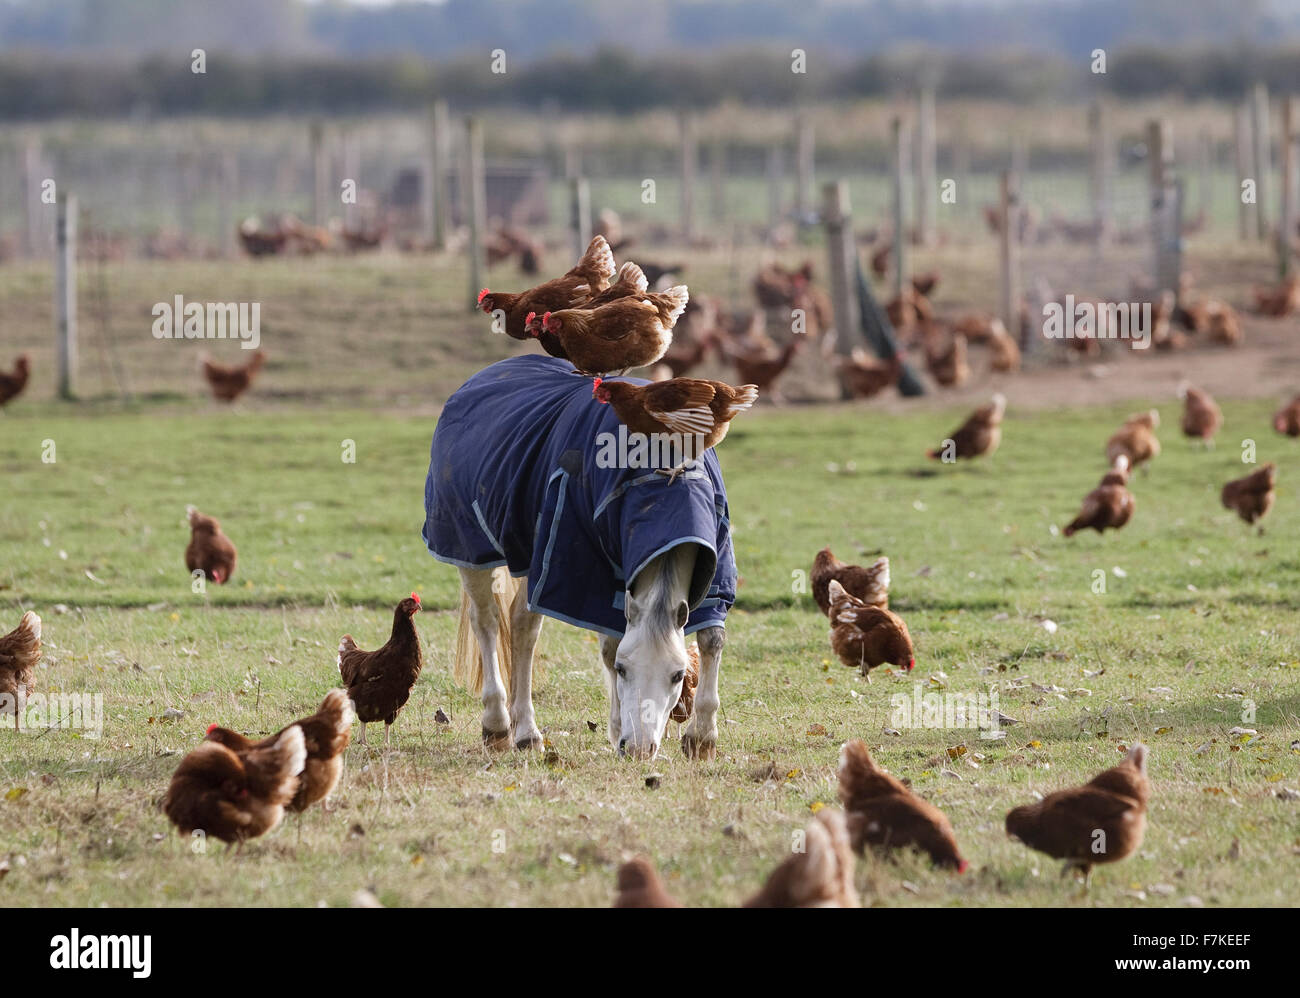 Chickens riding on a pony - Stock Image